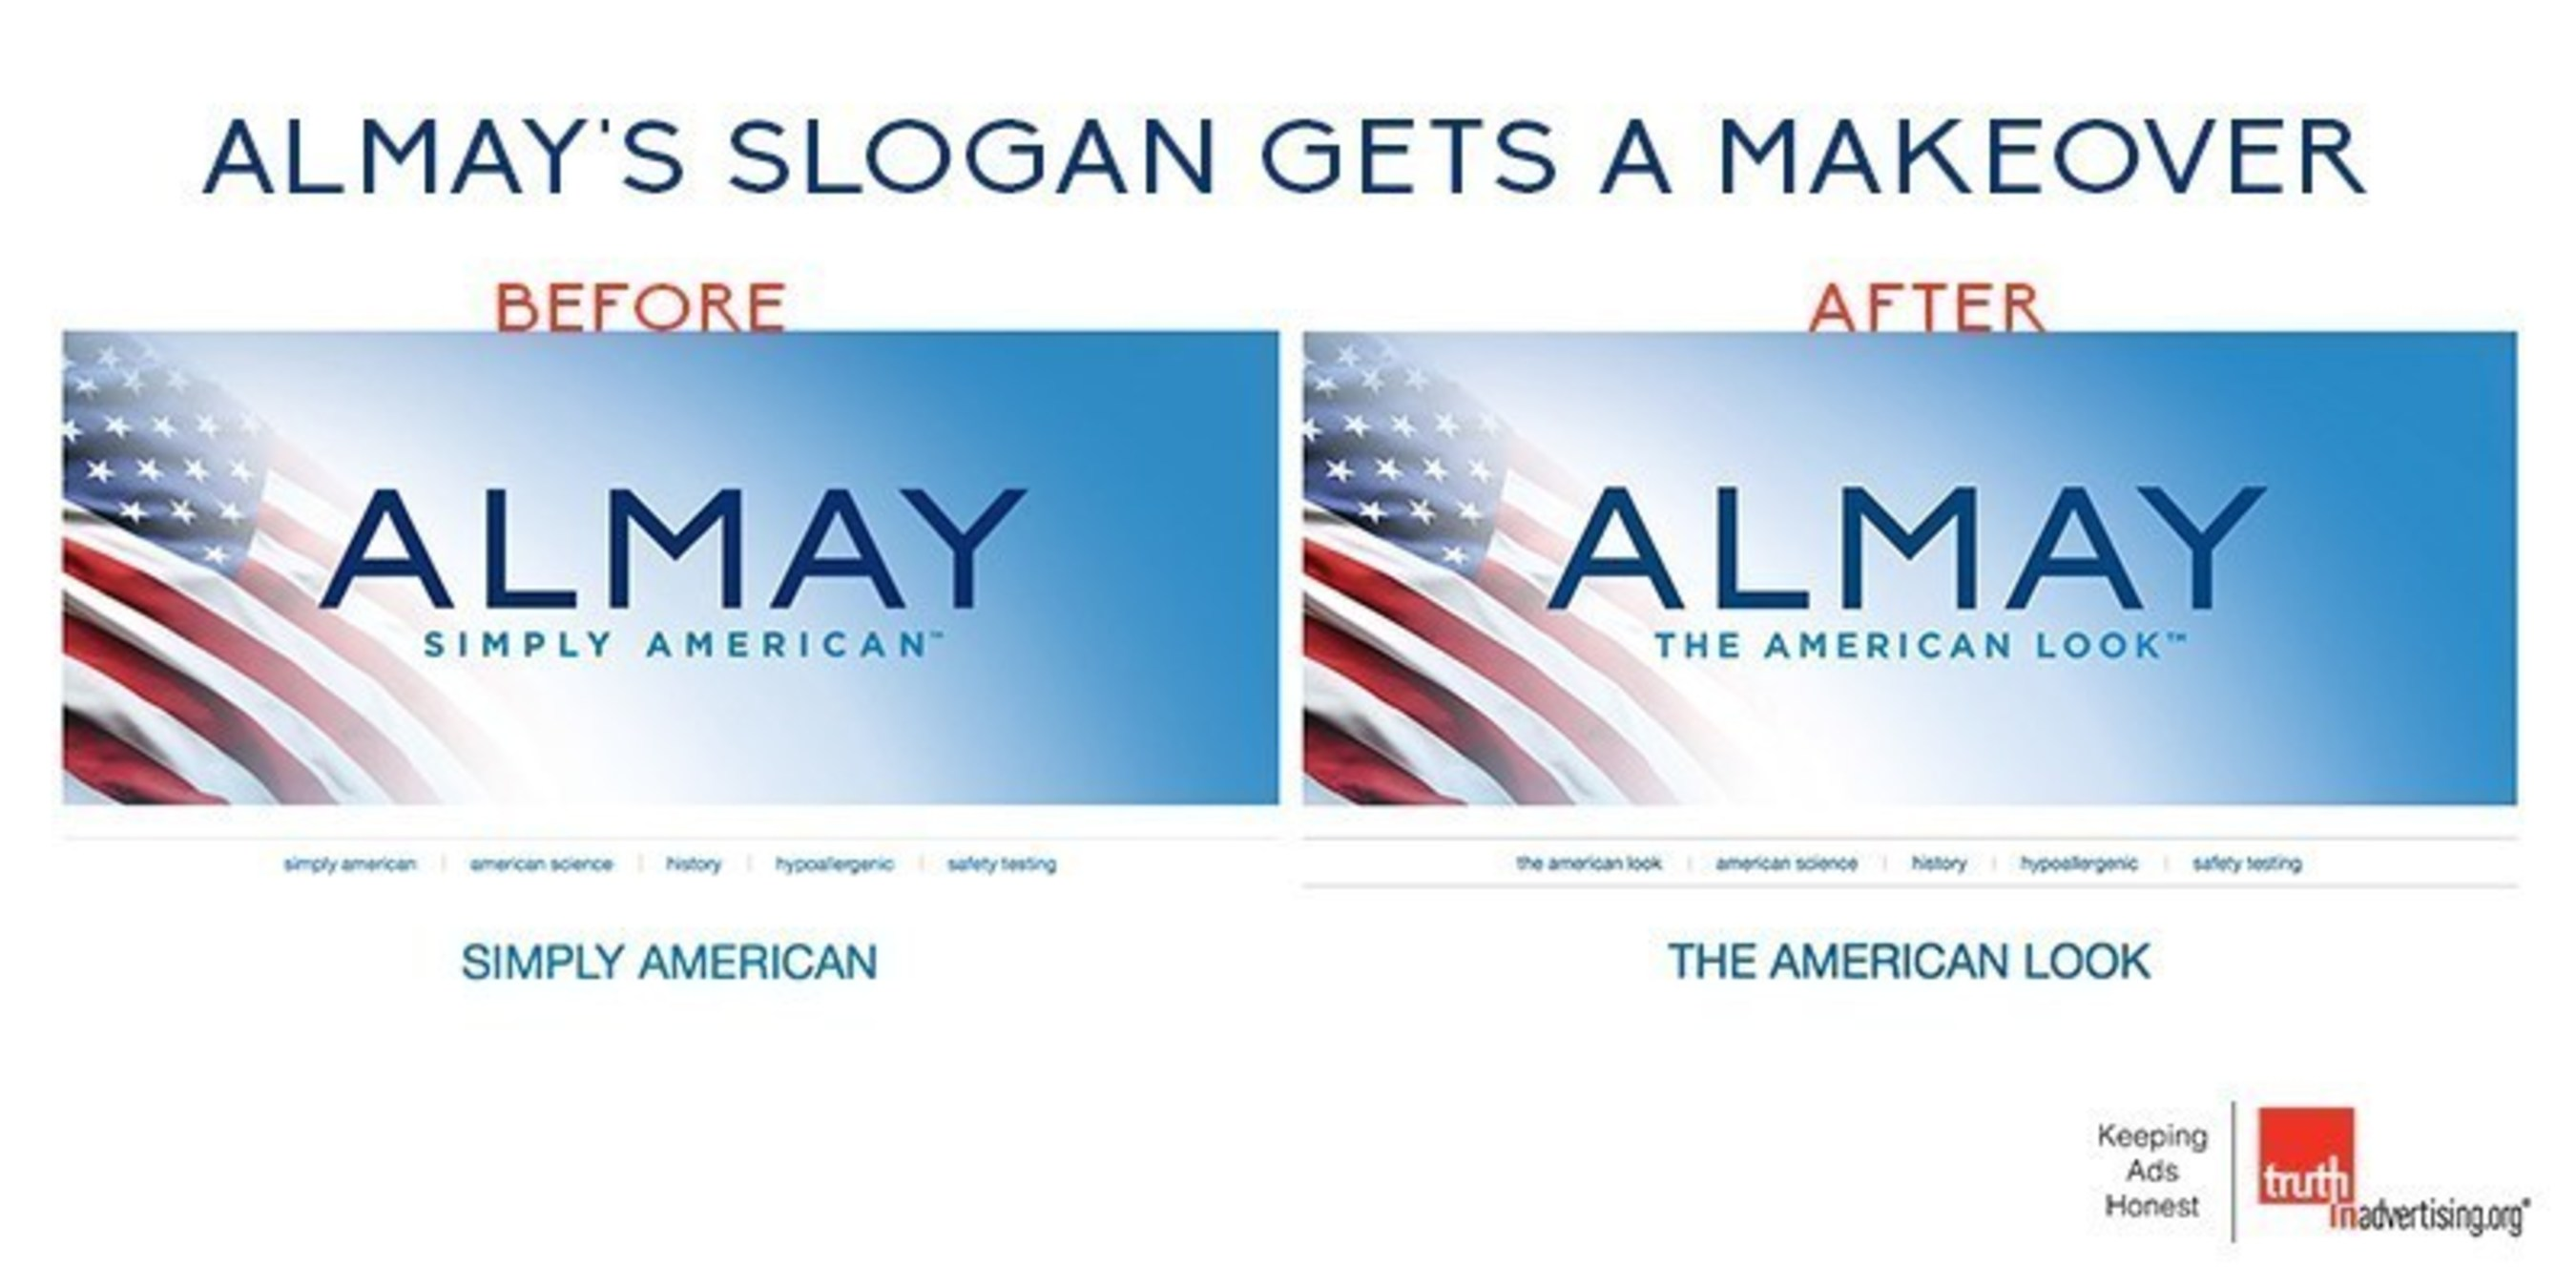 Almay's Slogan Gets a Makeover After Ad Watchdog TINA.org Files Complaint